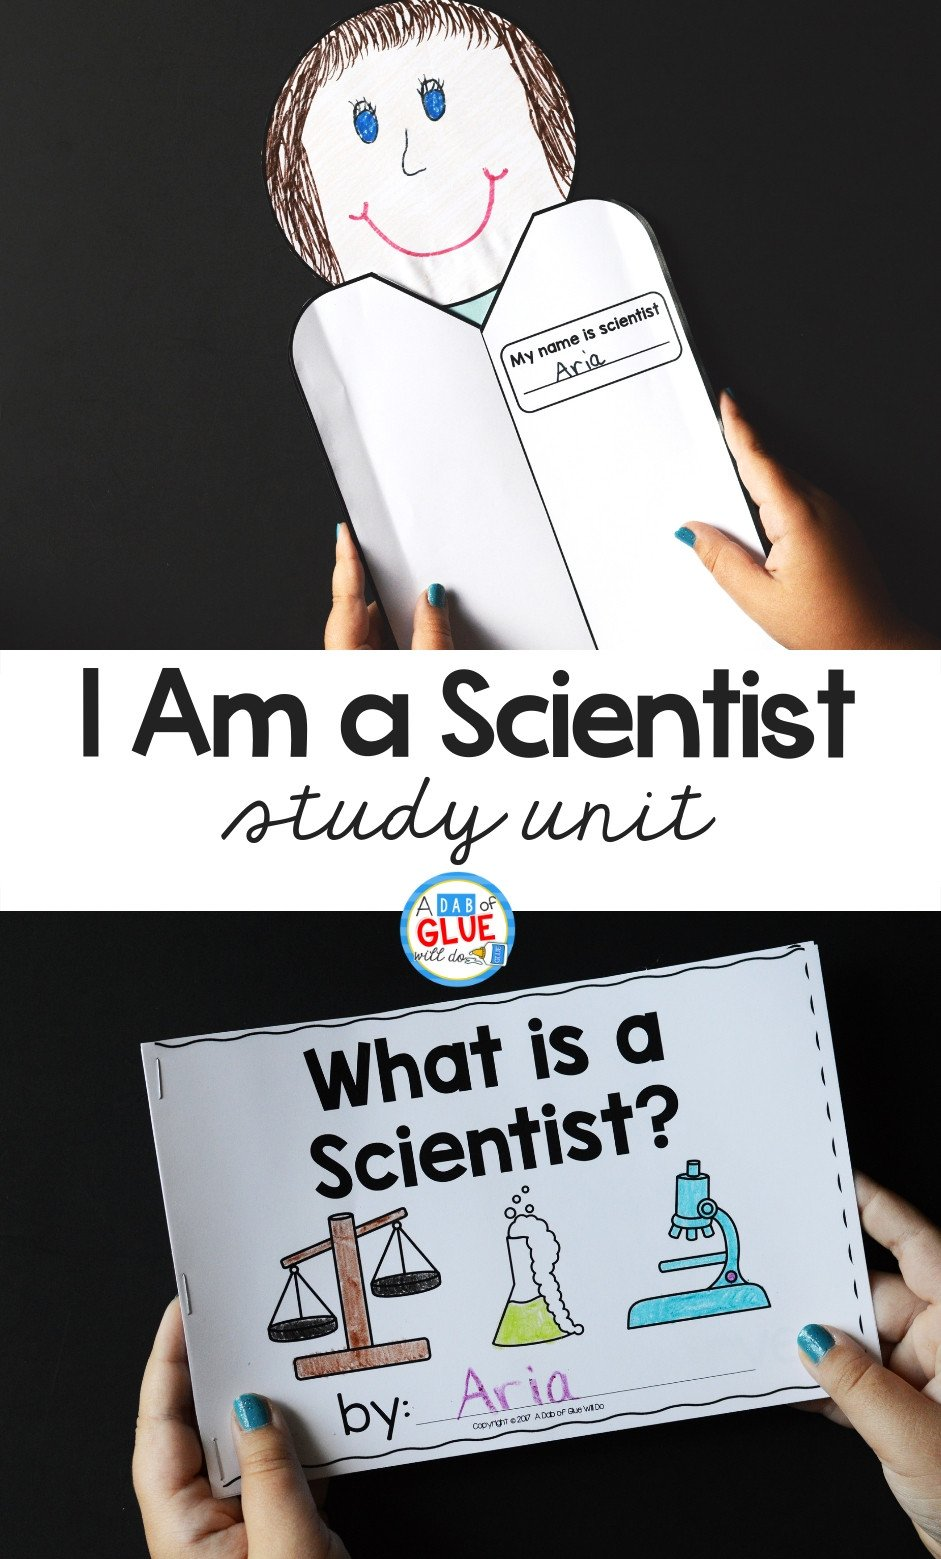 I am a Scientist Pinterest 2 images